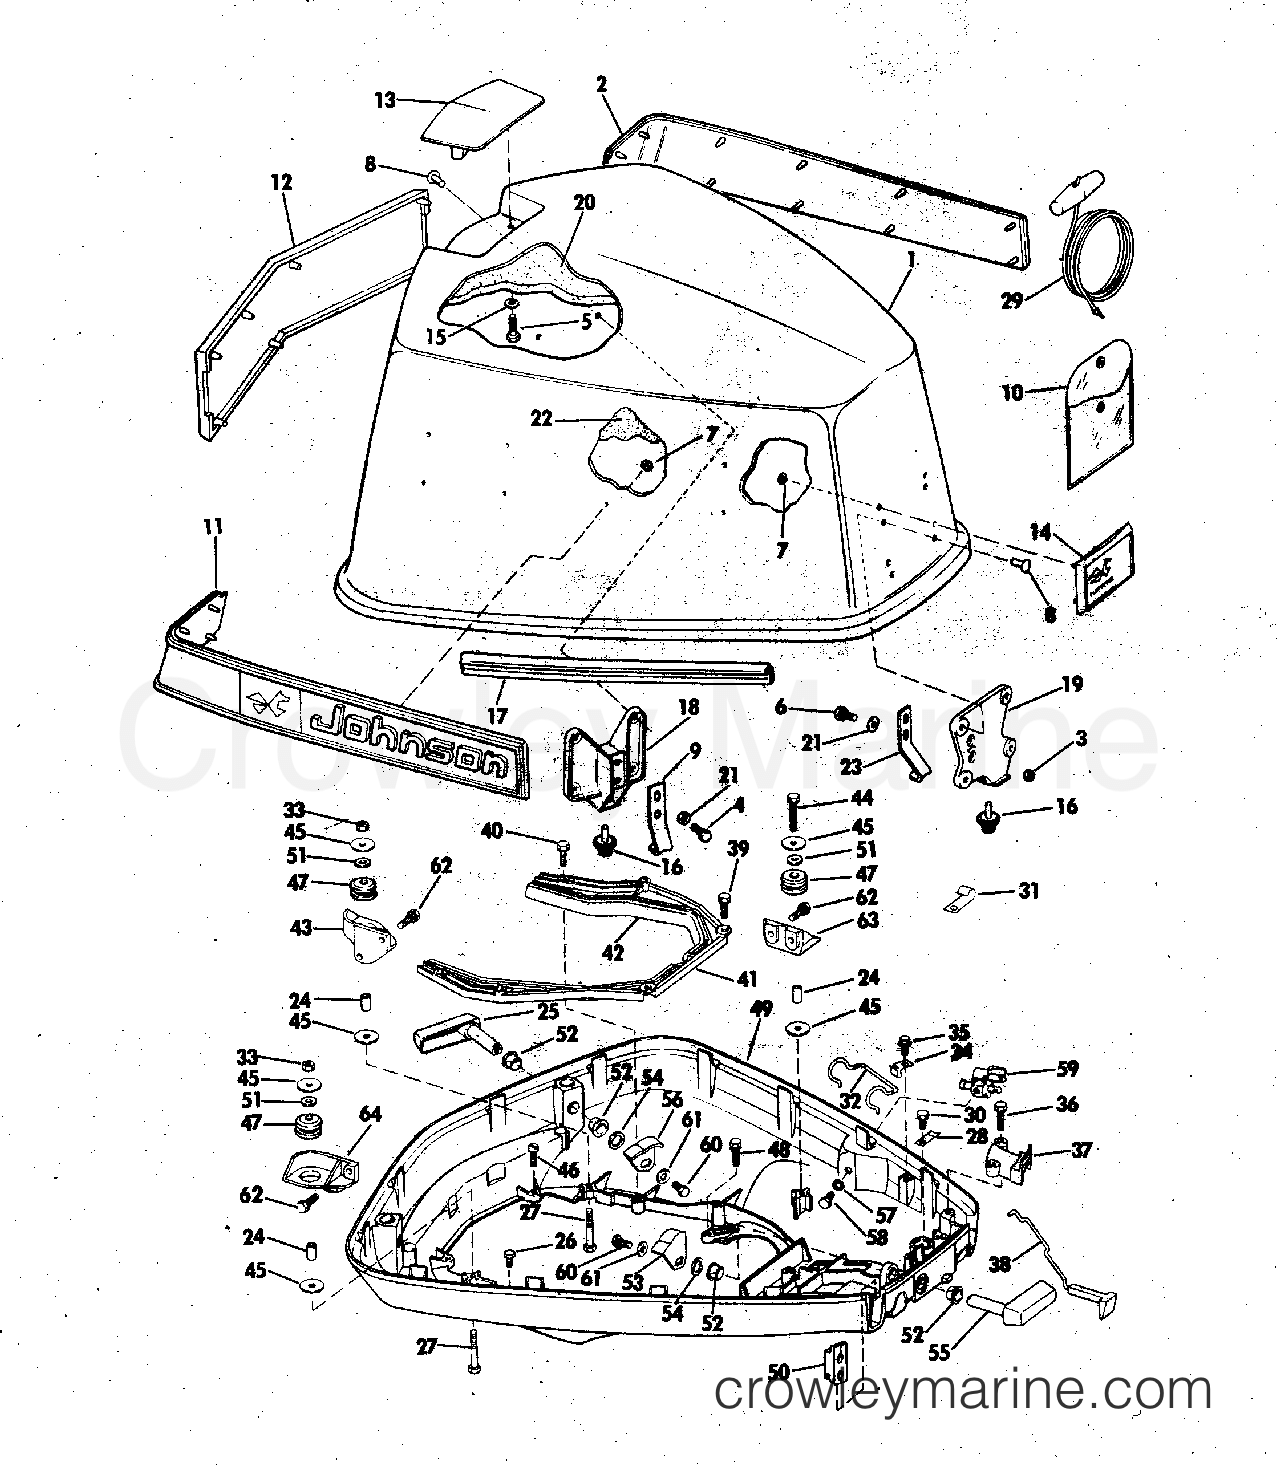 225 Mercury Outboard Wiring